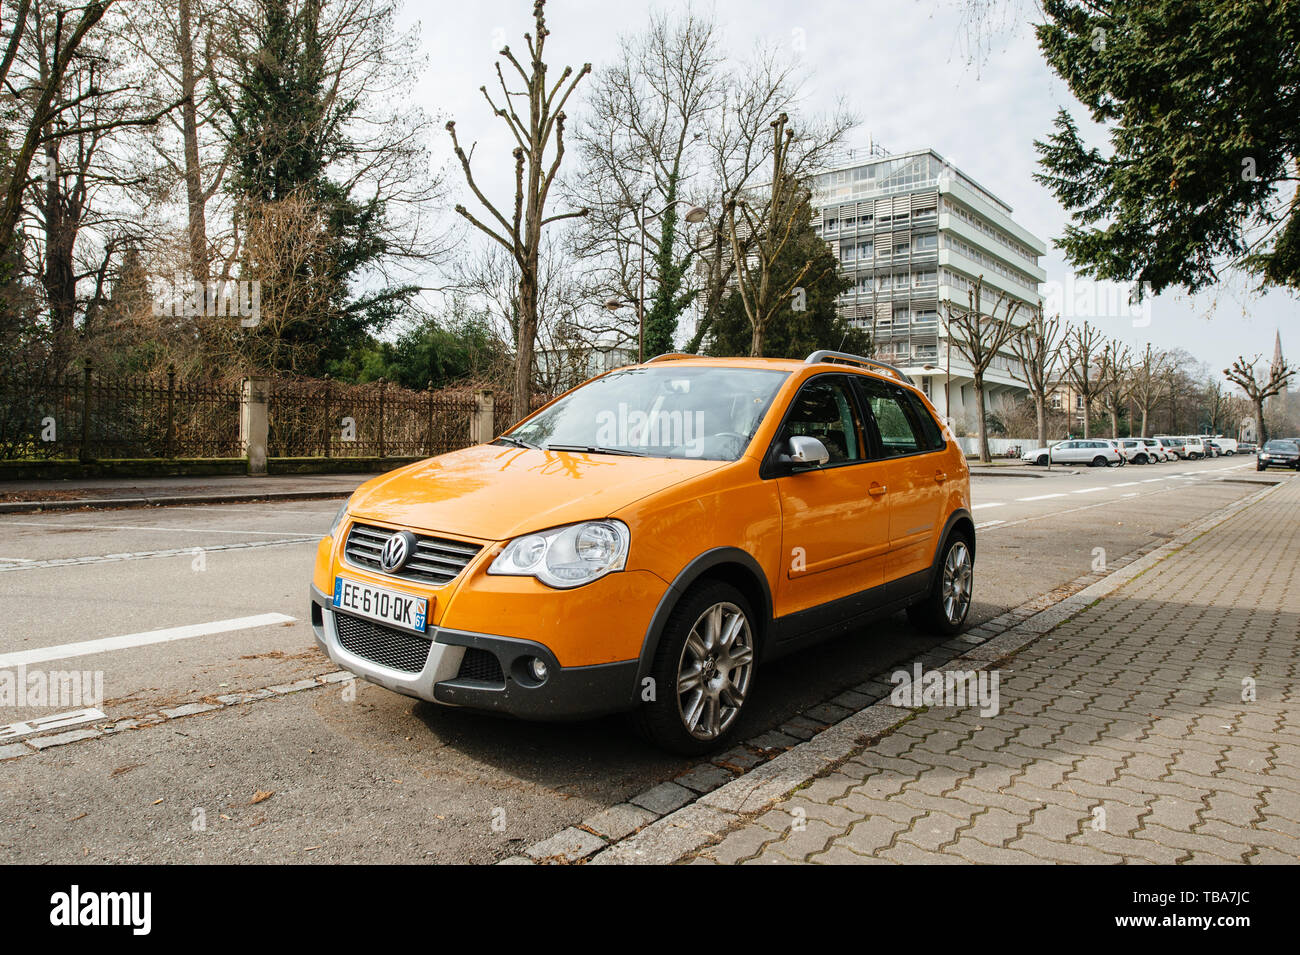 Strasbourg, France- Feb 19, 2017: New beautiful Volkswagen Cross Polo car parked on French street - Stock Image